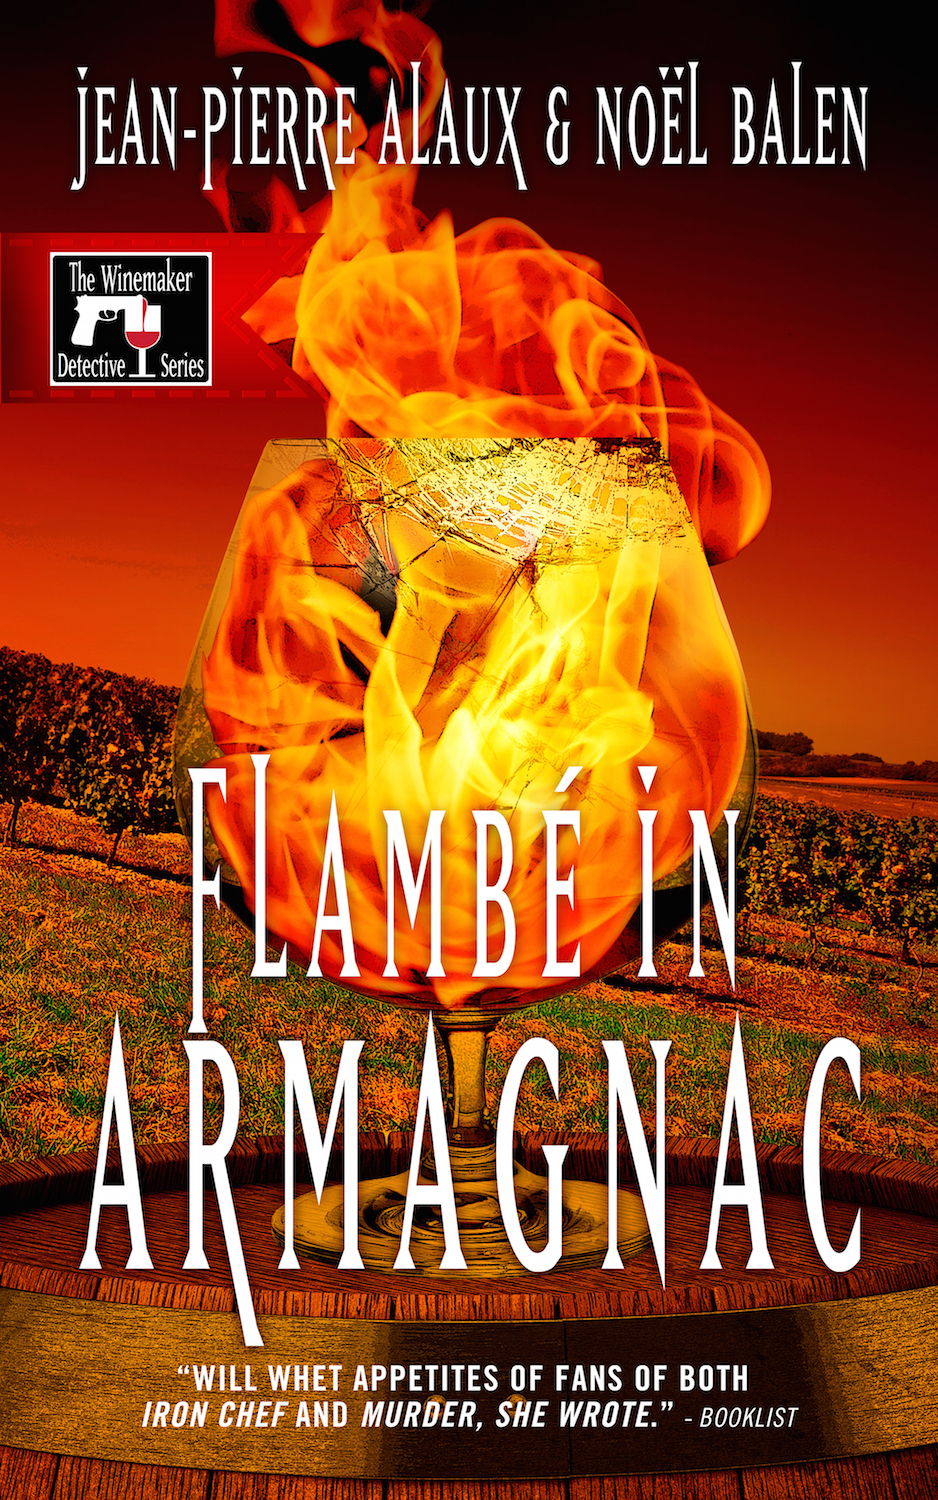 Flambe-in-armagnac-938x1500.jpg